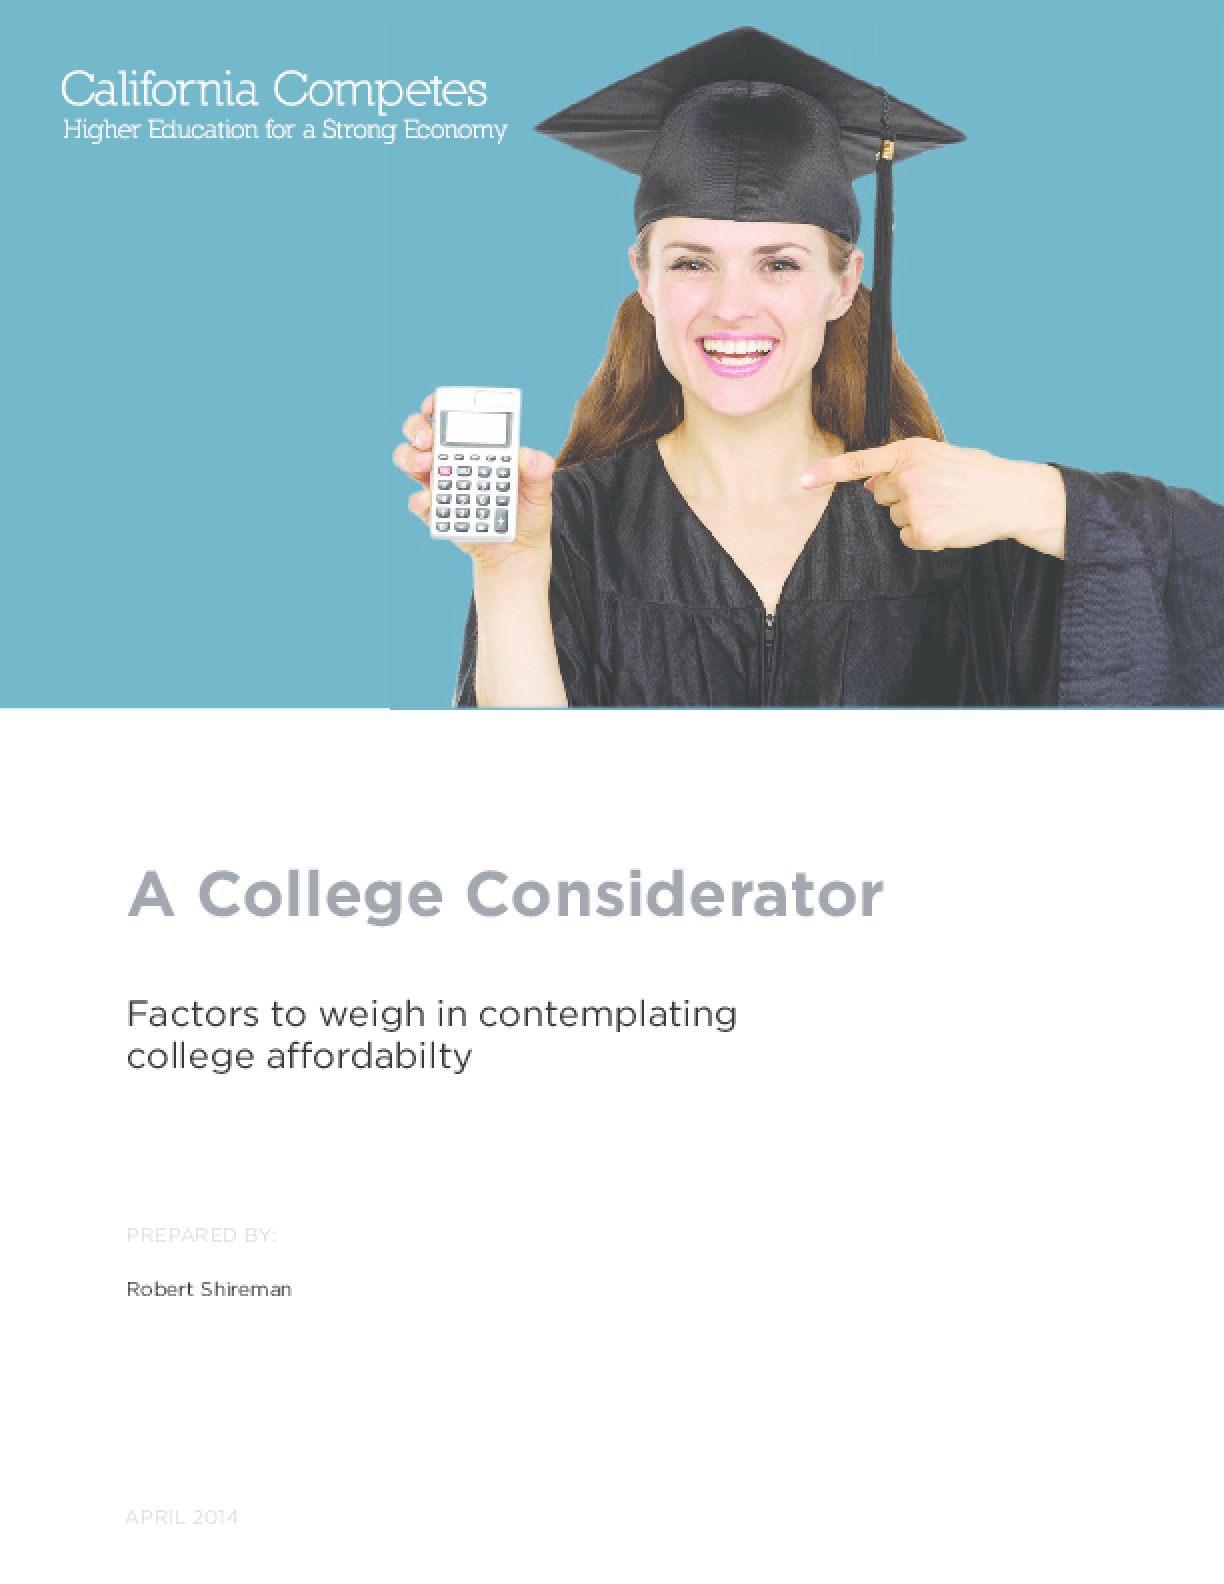 A College Considerator: Factors to Weigh in Contemplating College Affordability